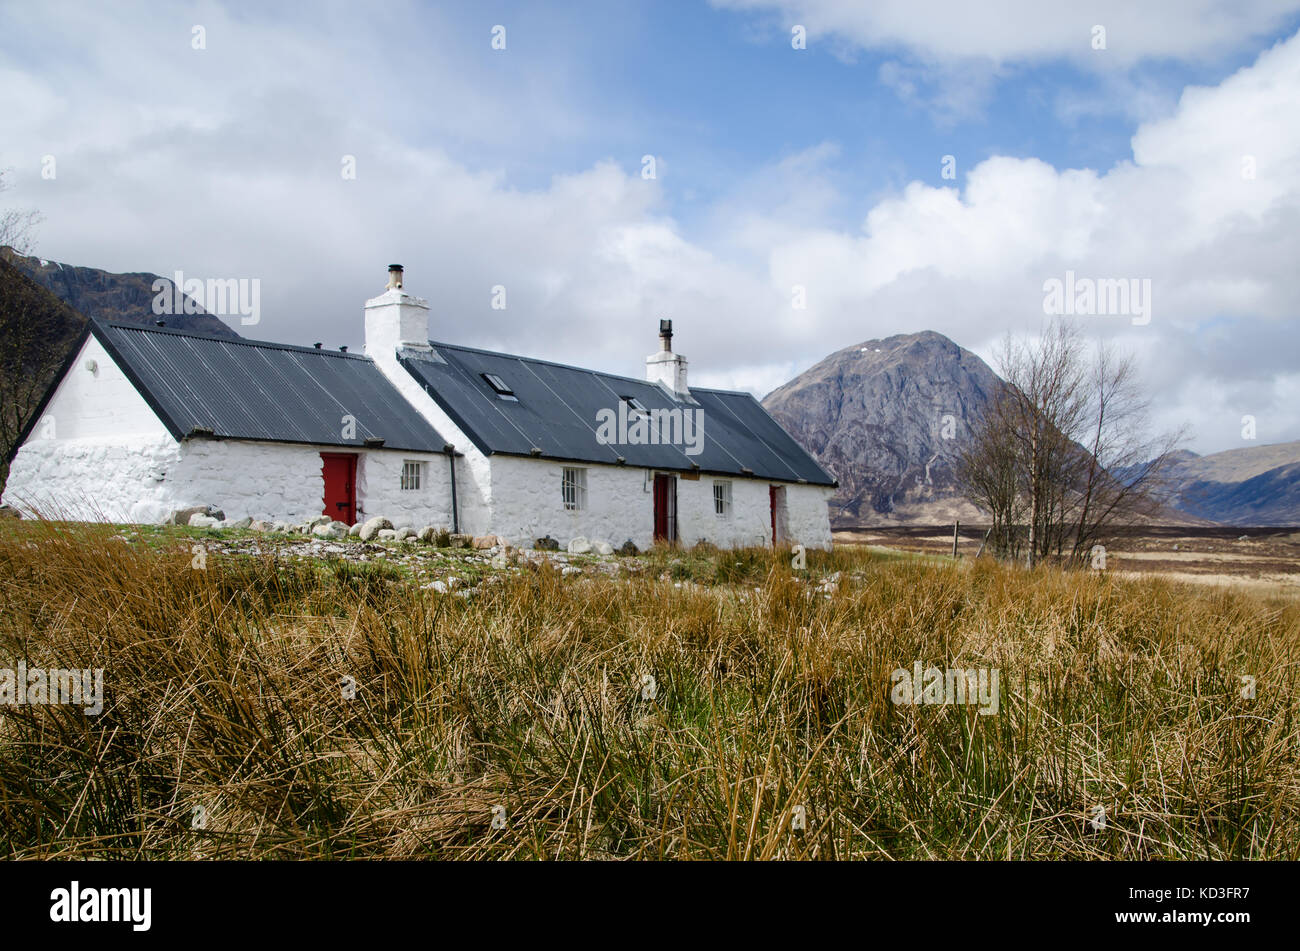 Black Rock cottage Glencoe Scotland - Stock Image